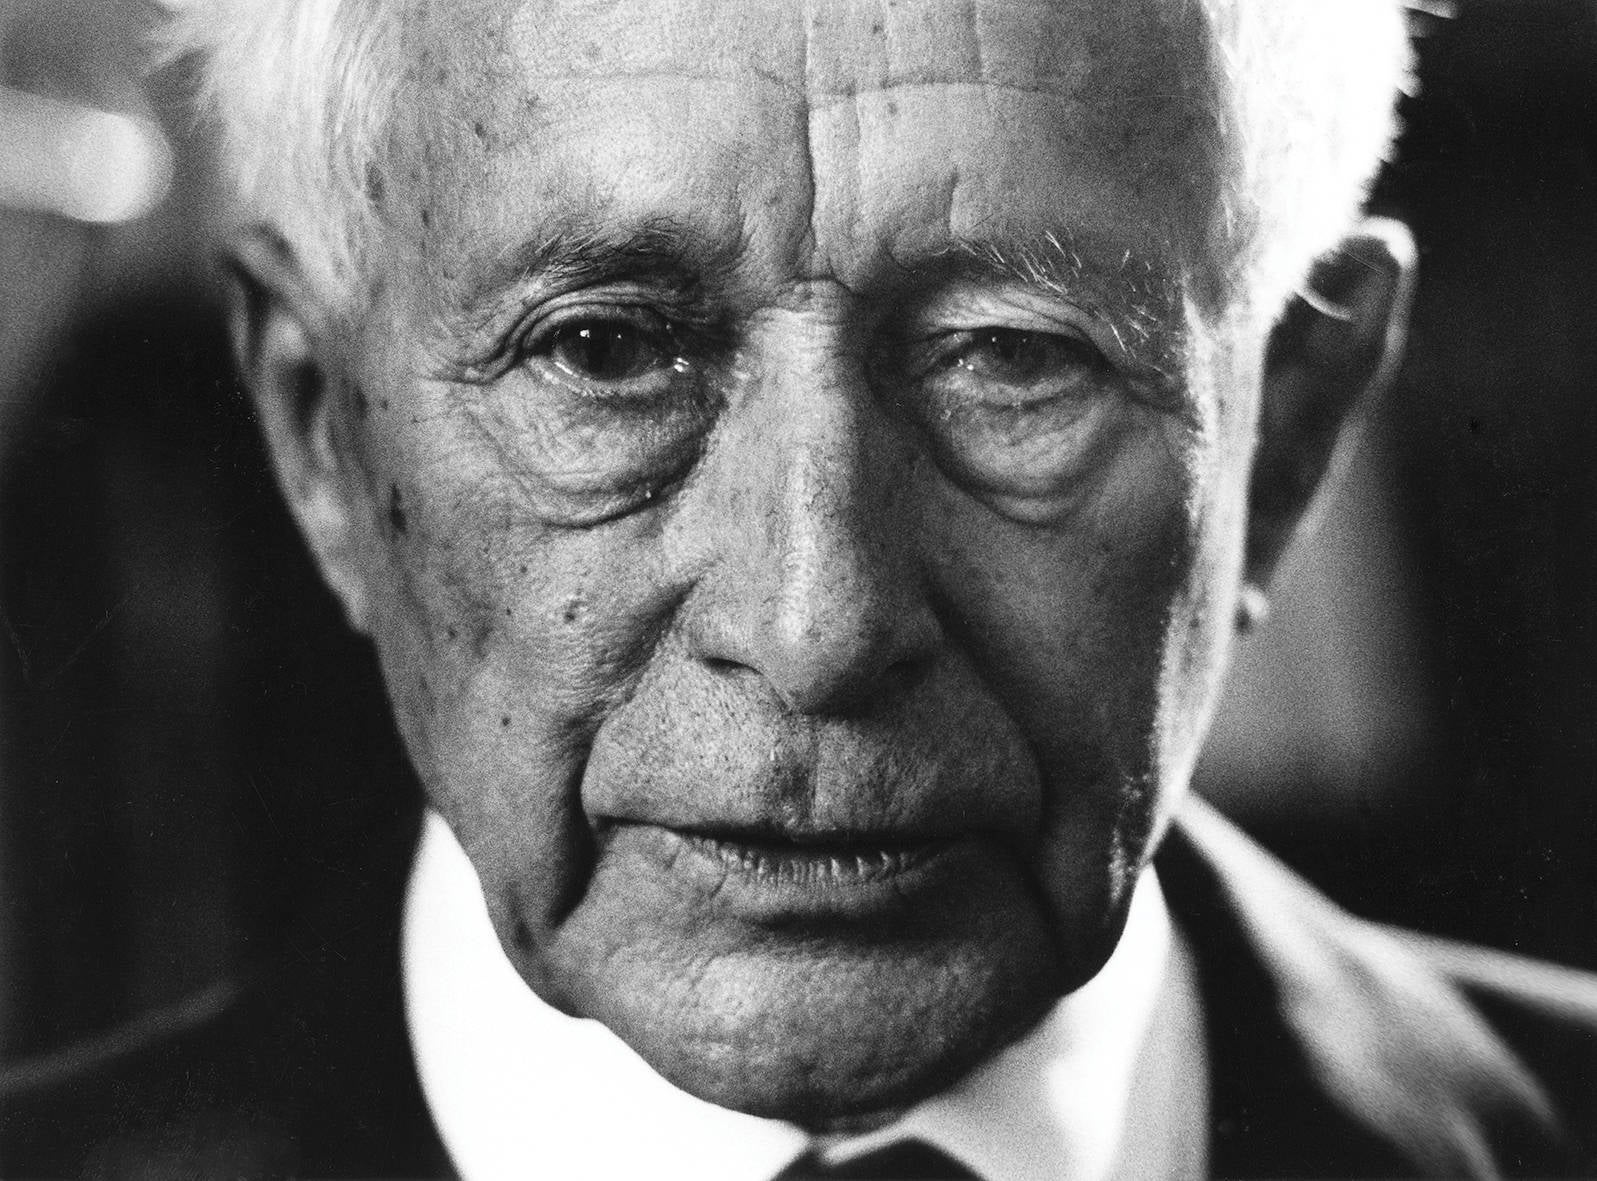 The beauty and savagery of Ernst Jünger's wartime diaries